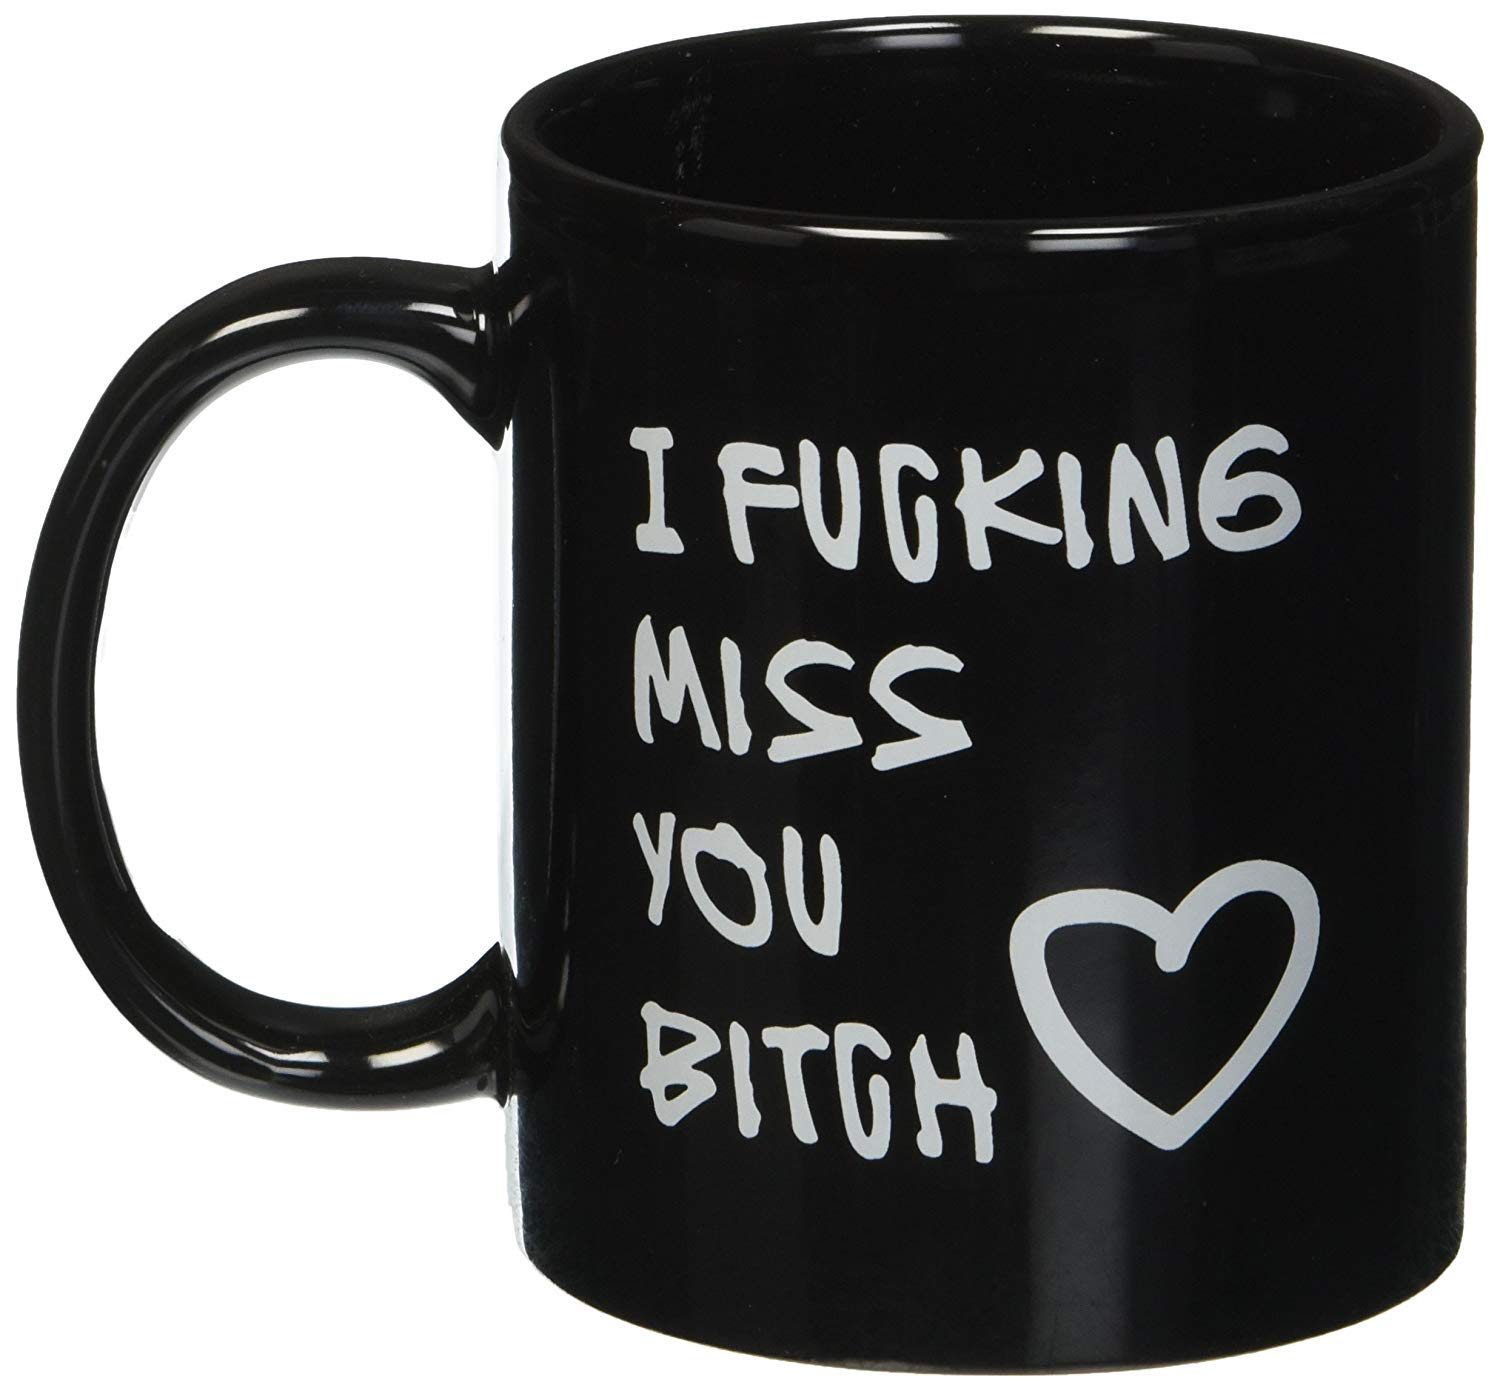 Amazing2015 Best Friends Long Distance Friendship I FUCKING Miss YOU Bitch Coffee Mug or Tea Cup - 11 ounces